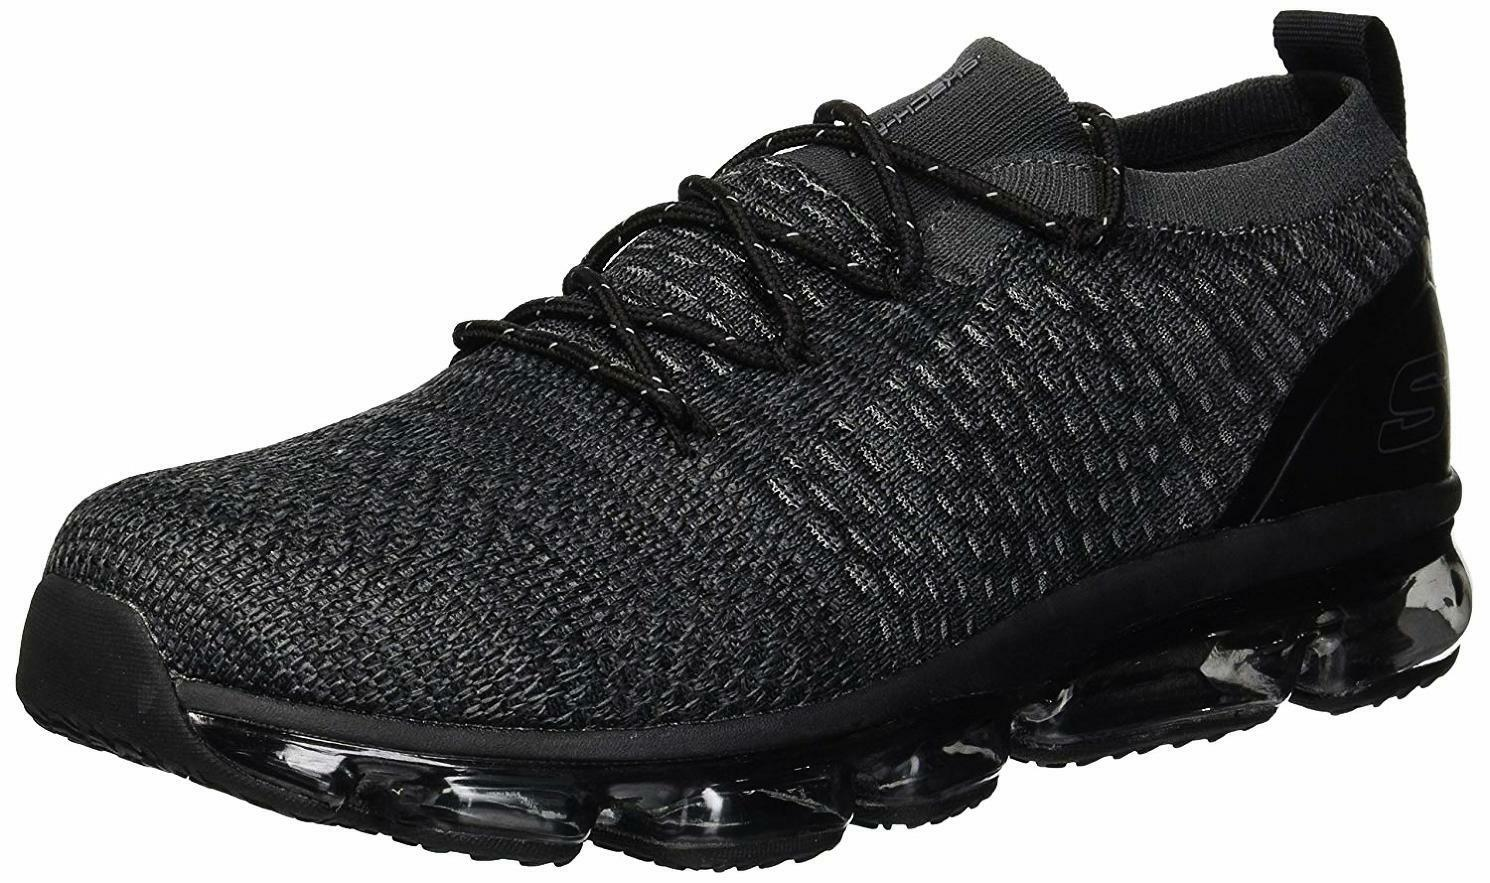 Skechers Men's Skech Air Atlas Sneaker - Choose SZ color